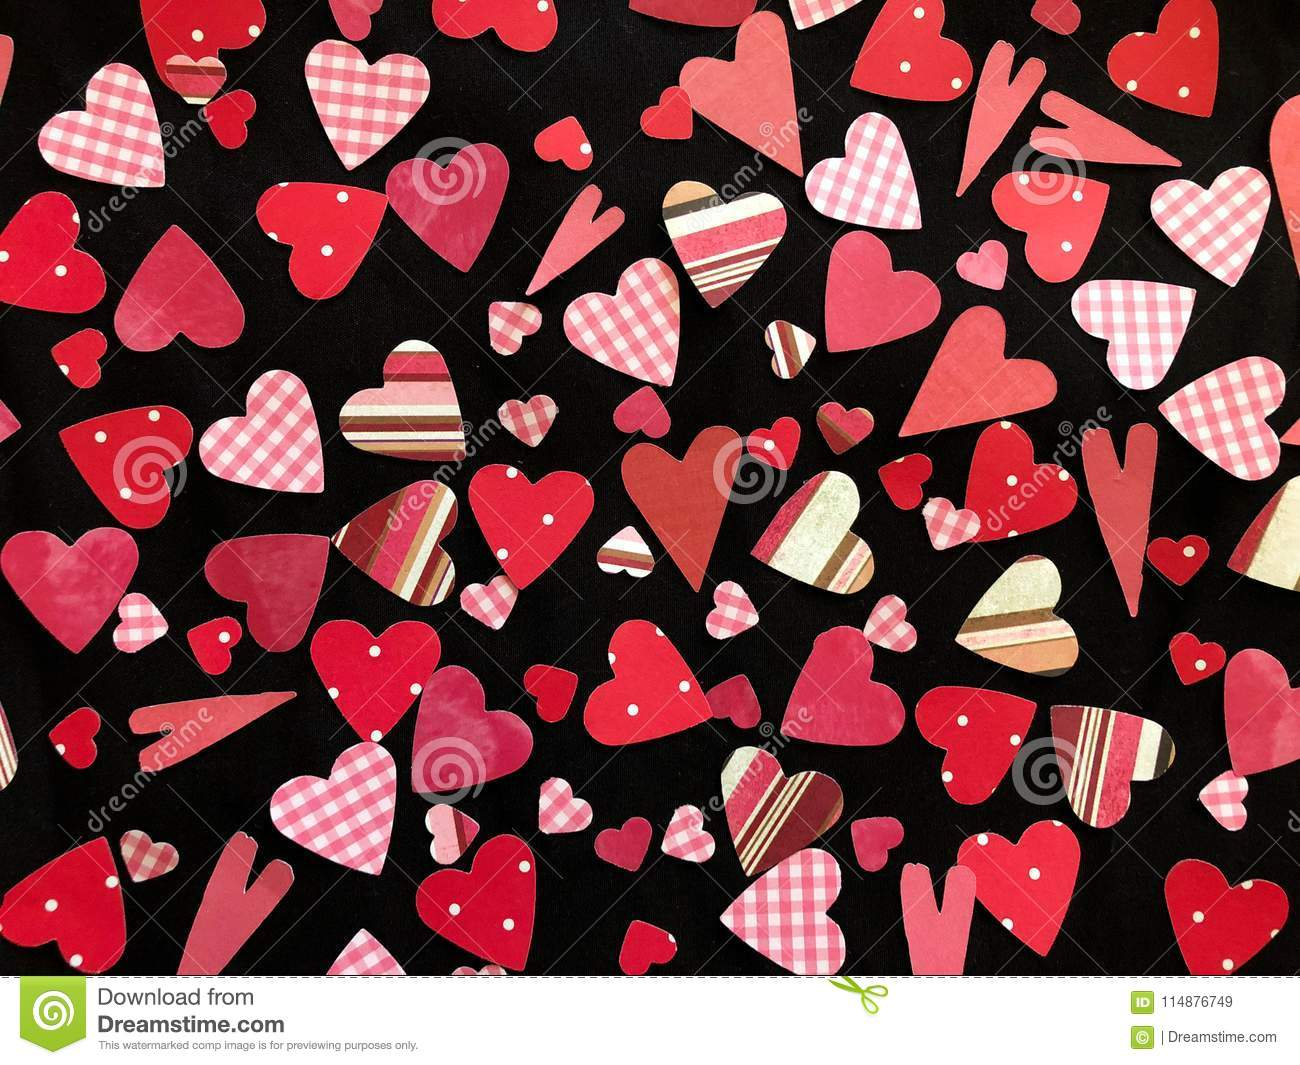 Watch - Black and pink hearts background photo video